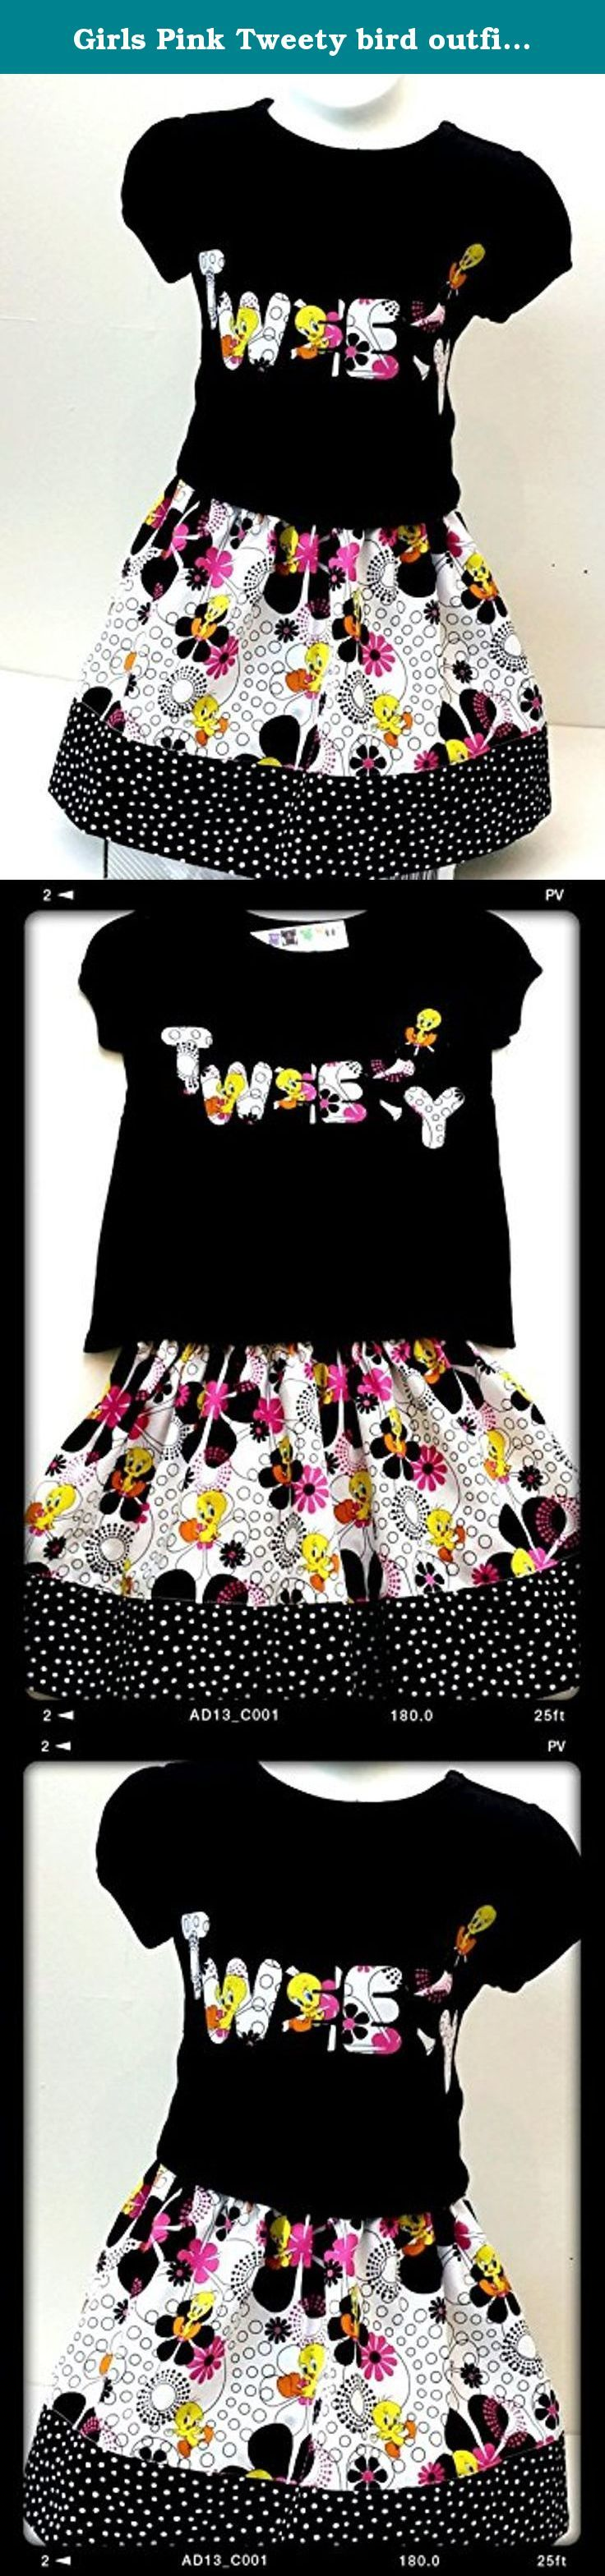 Girls Pink Tweety bird outfit skirt Girl's's Toddler skirt set 2 piece Outfit size 4T. One-of-a kind TWEETY BIRD girl 2-piece outfit, is prefect for the birthday . Set included Short sleeves black shirt with matching elastic waist skirt with hand cut applique in the front of the shirt. Applique was sewn down for durability. YOUR BUSINESS IS VERY IMPORTANT TO US PLEASE BEFORE ANY BAD REVIEW COMMUNICATE WITH ME AND WE CAN WORK THINGS OUT FEEL, FREE TO MESSAGE ME ANYTIME IF YOU HAVE ANY...